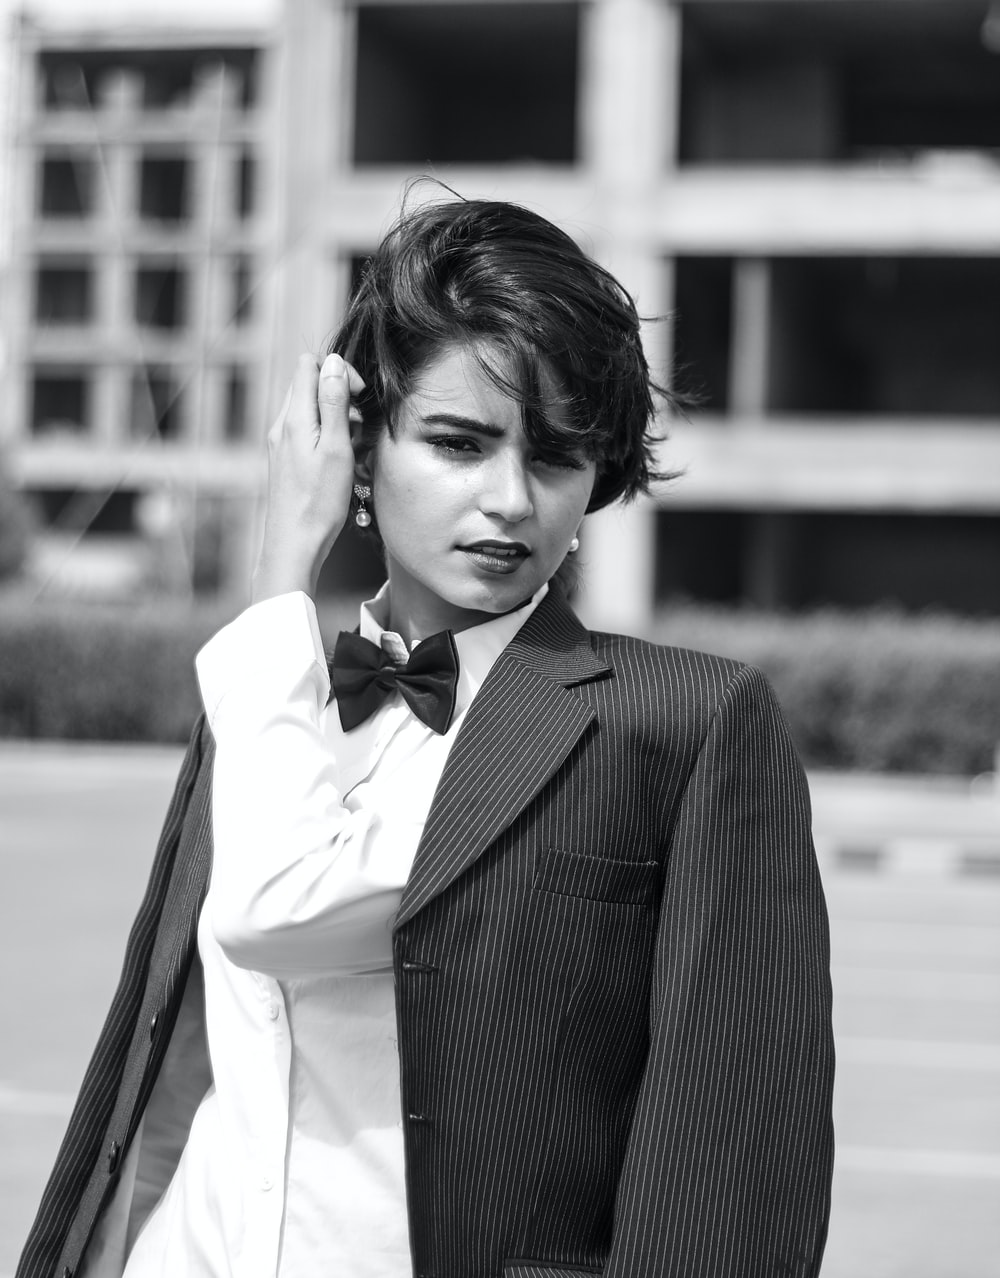 grayscale photography of Lily Collins in suit jacket